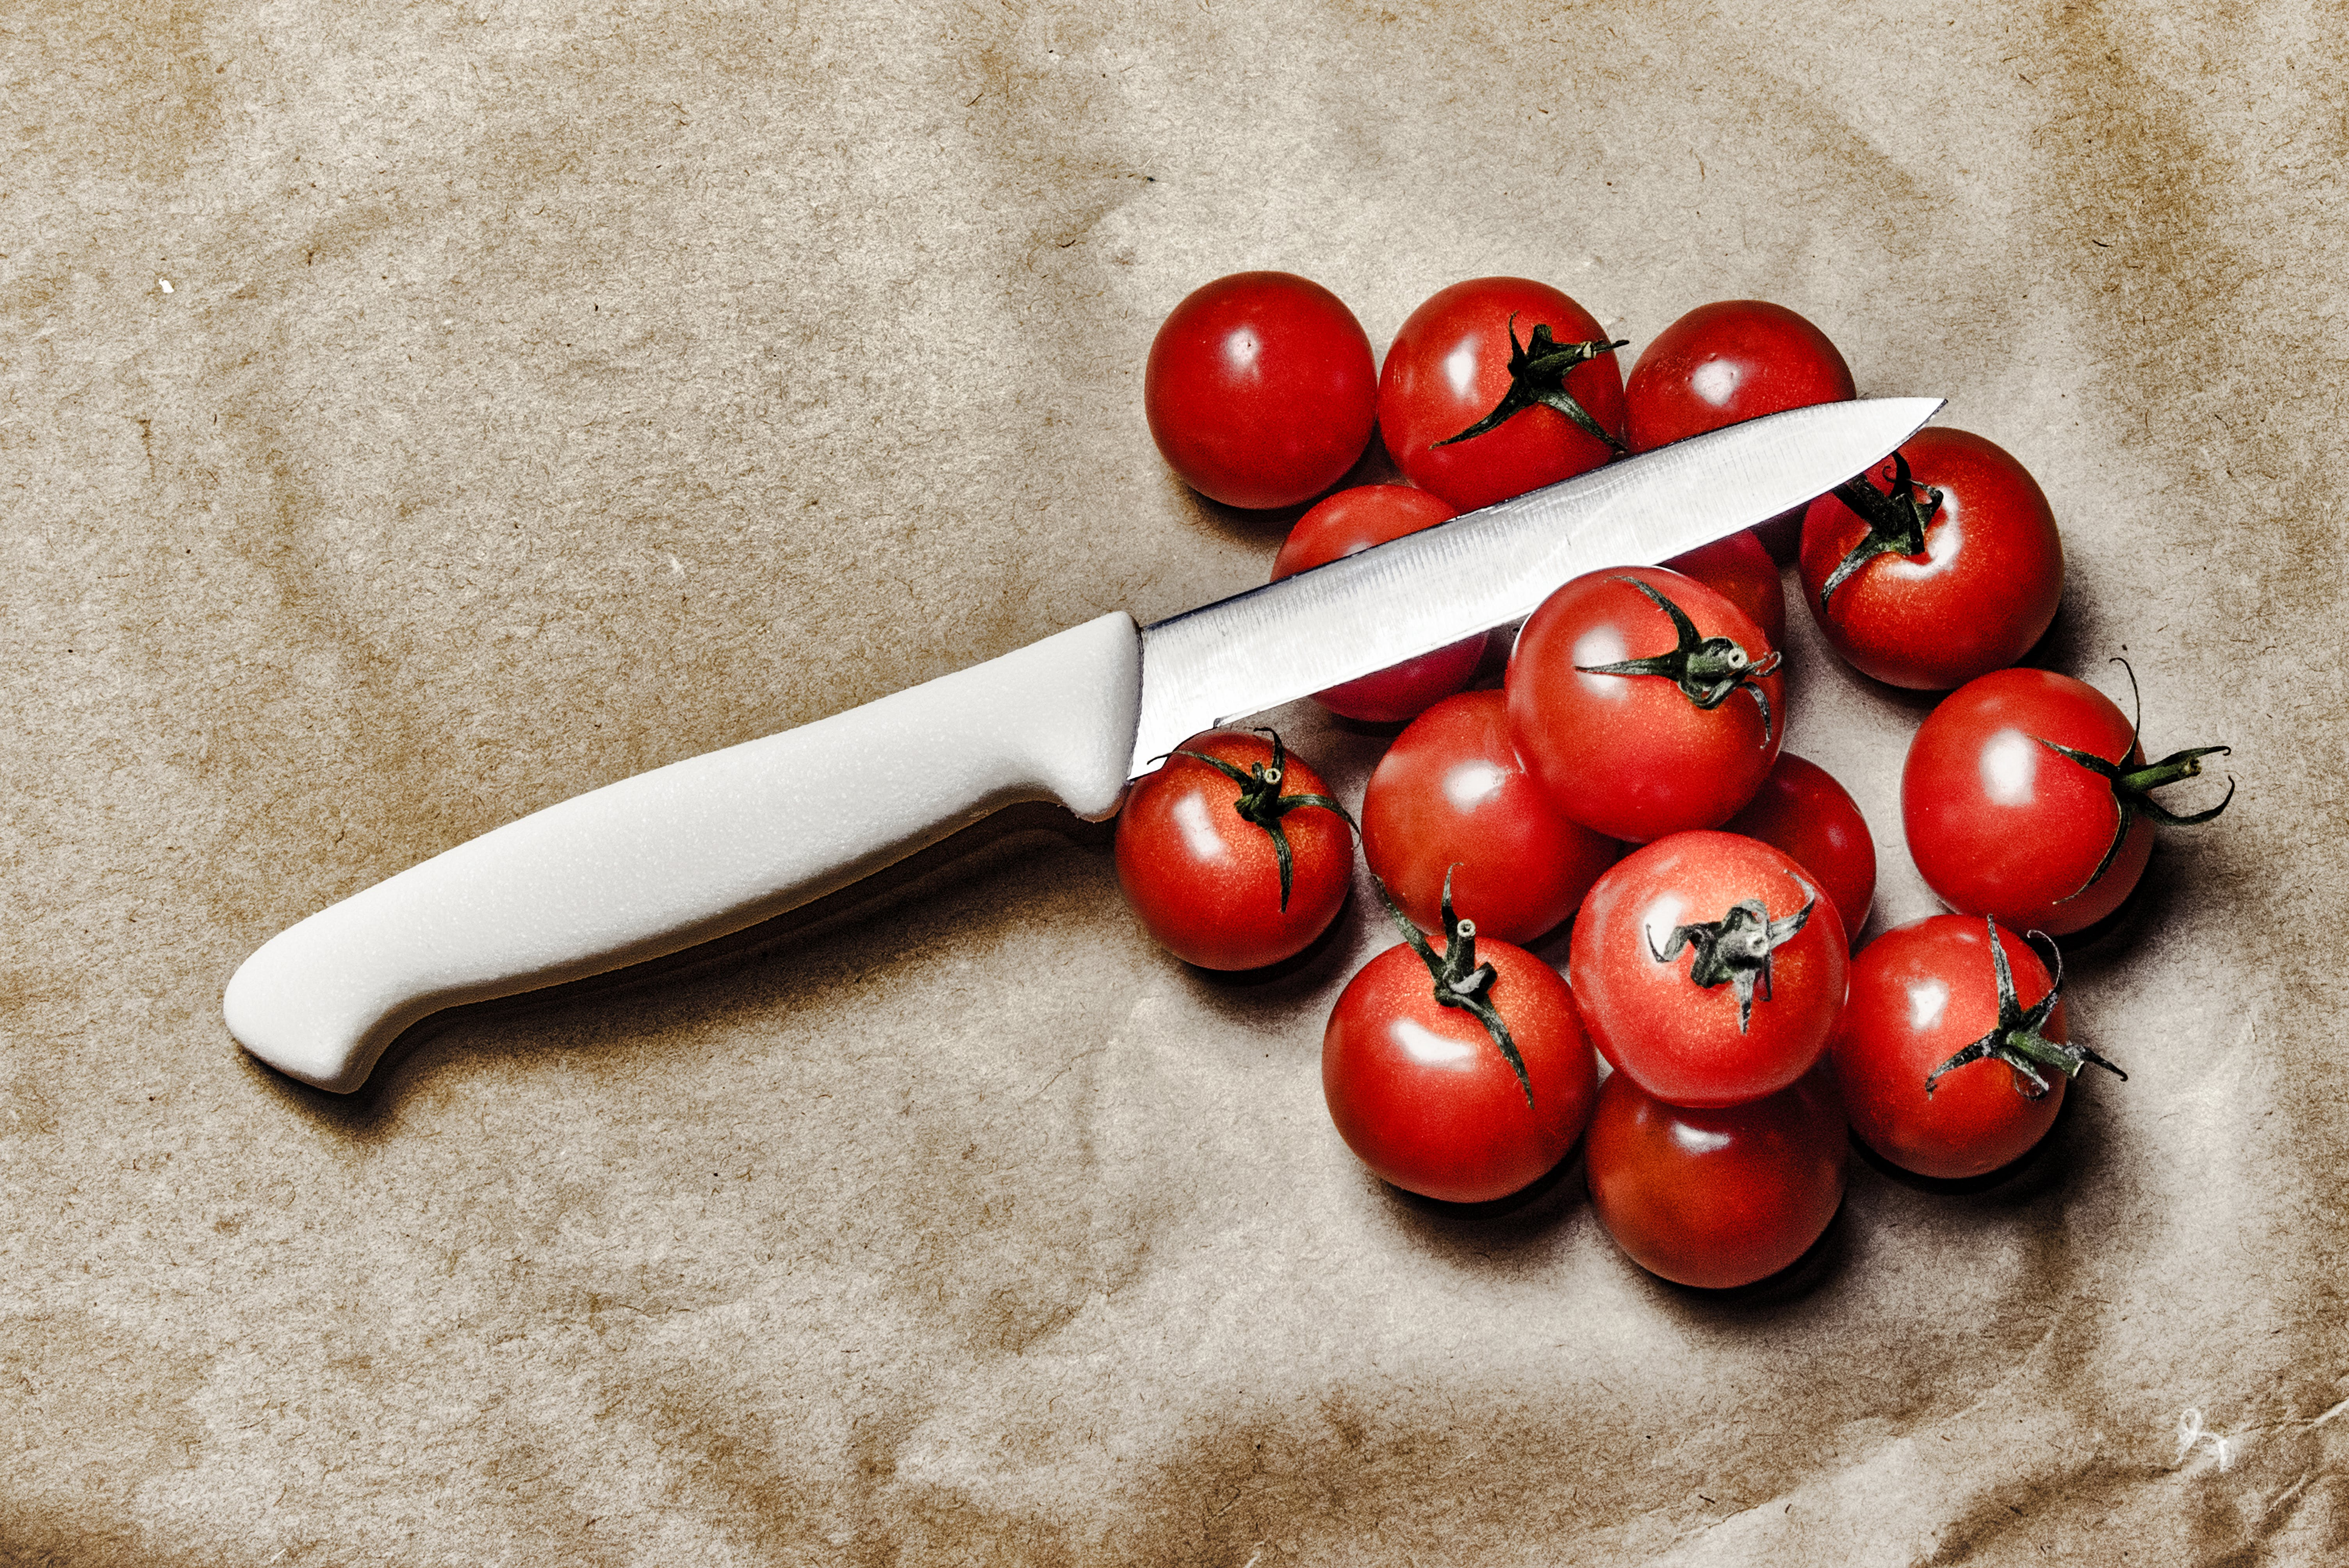 Tomatoes With Knife on Brown Surface